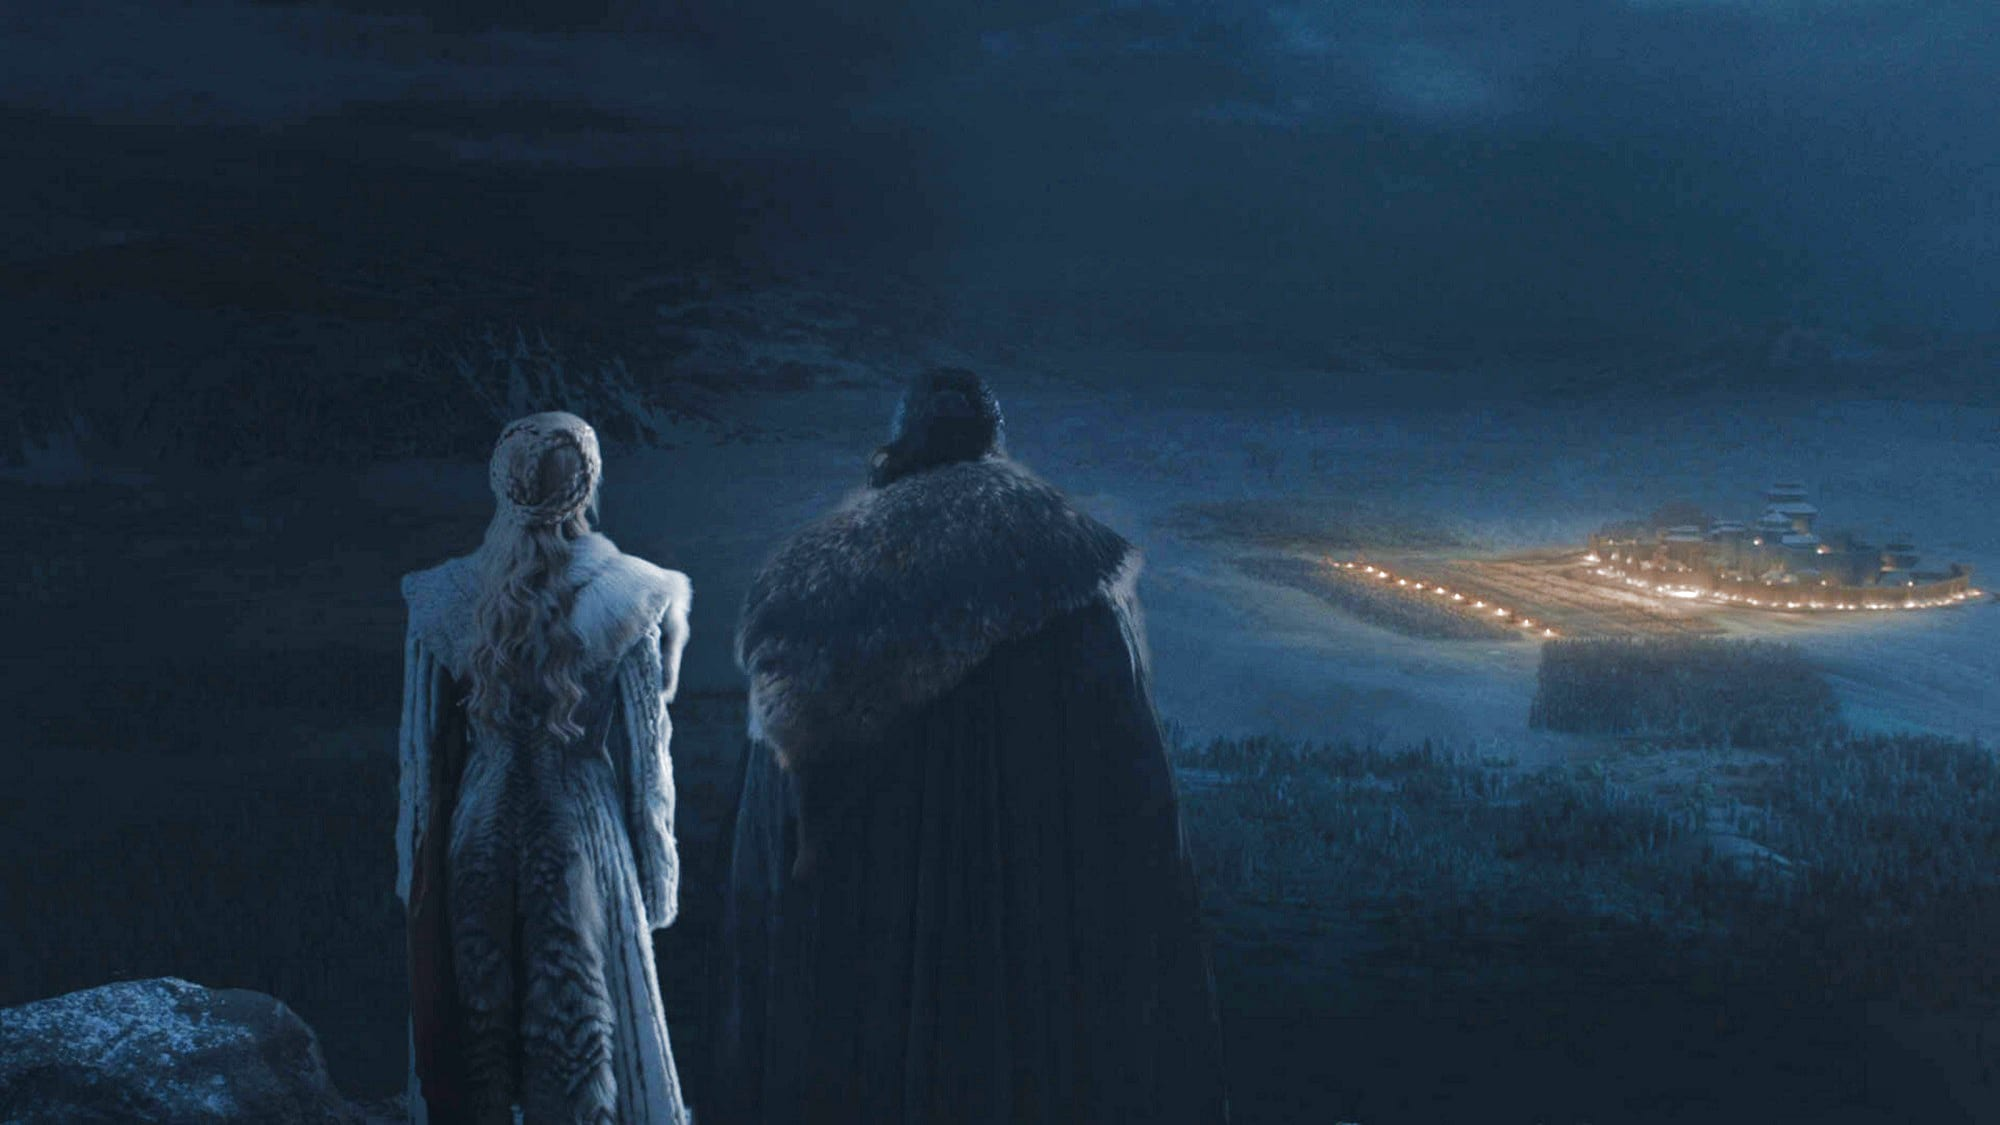 Now that 'Game of Thrones' is ending, here's what you need to know about the new prequel series